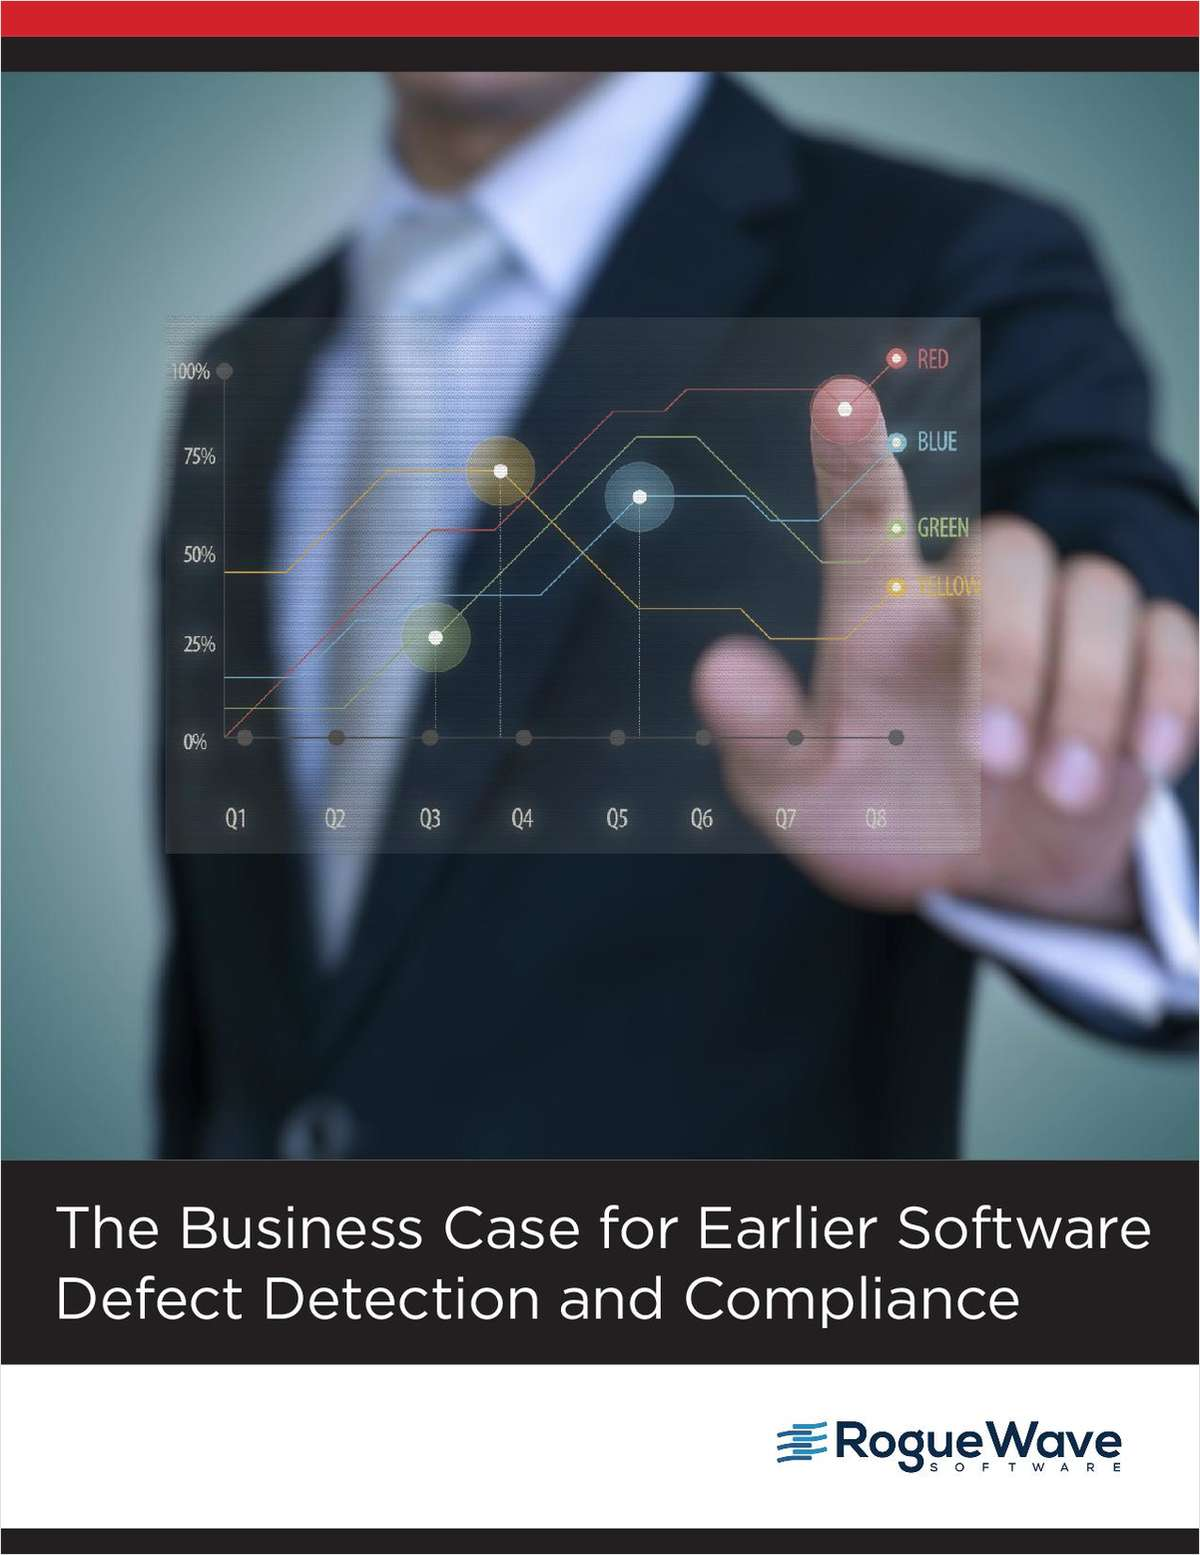 The Business Case for Earlier Software Defect Detection and Compliance